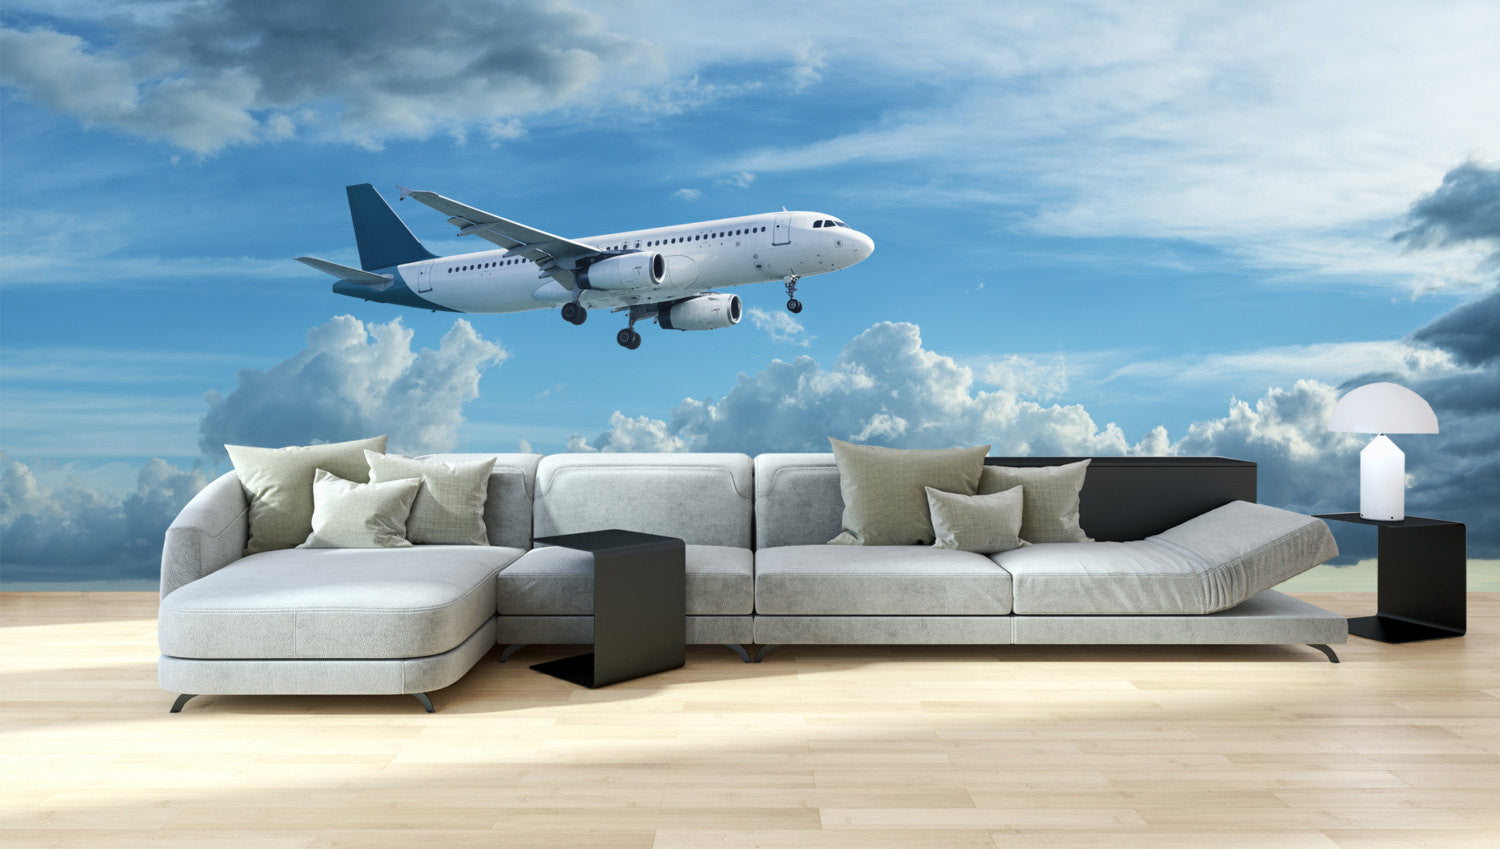 Wall Mural Airplane Is Flying Panoramic View Fabric